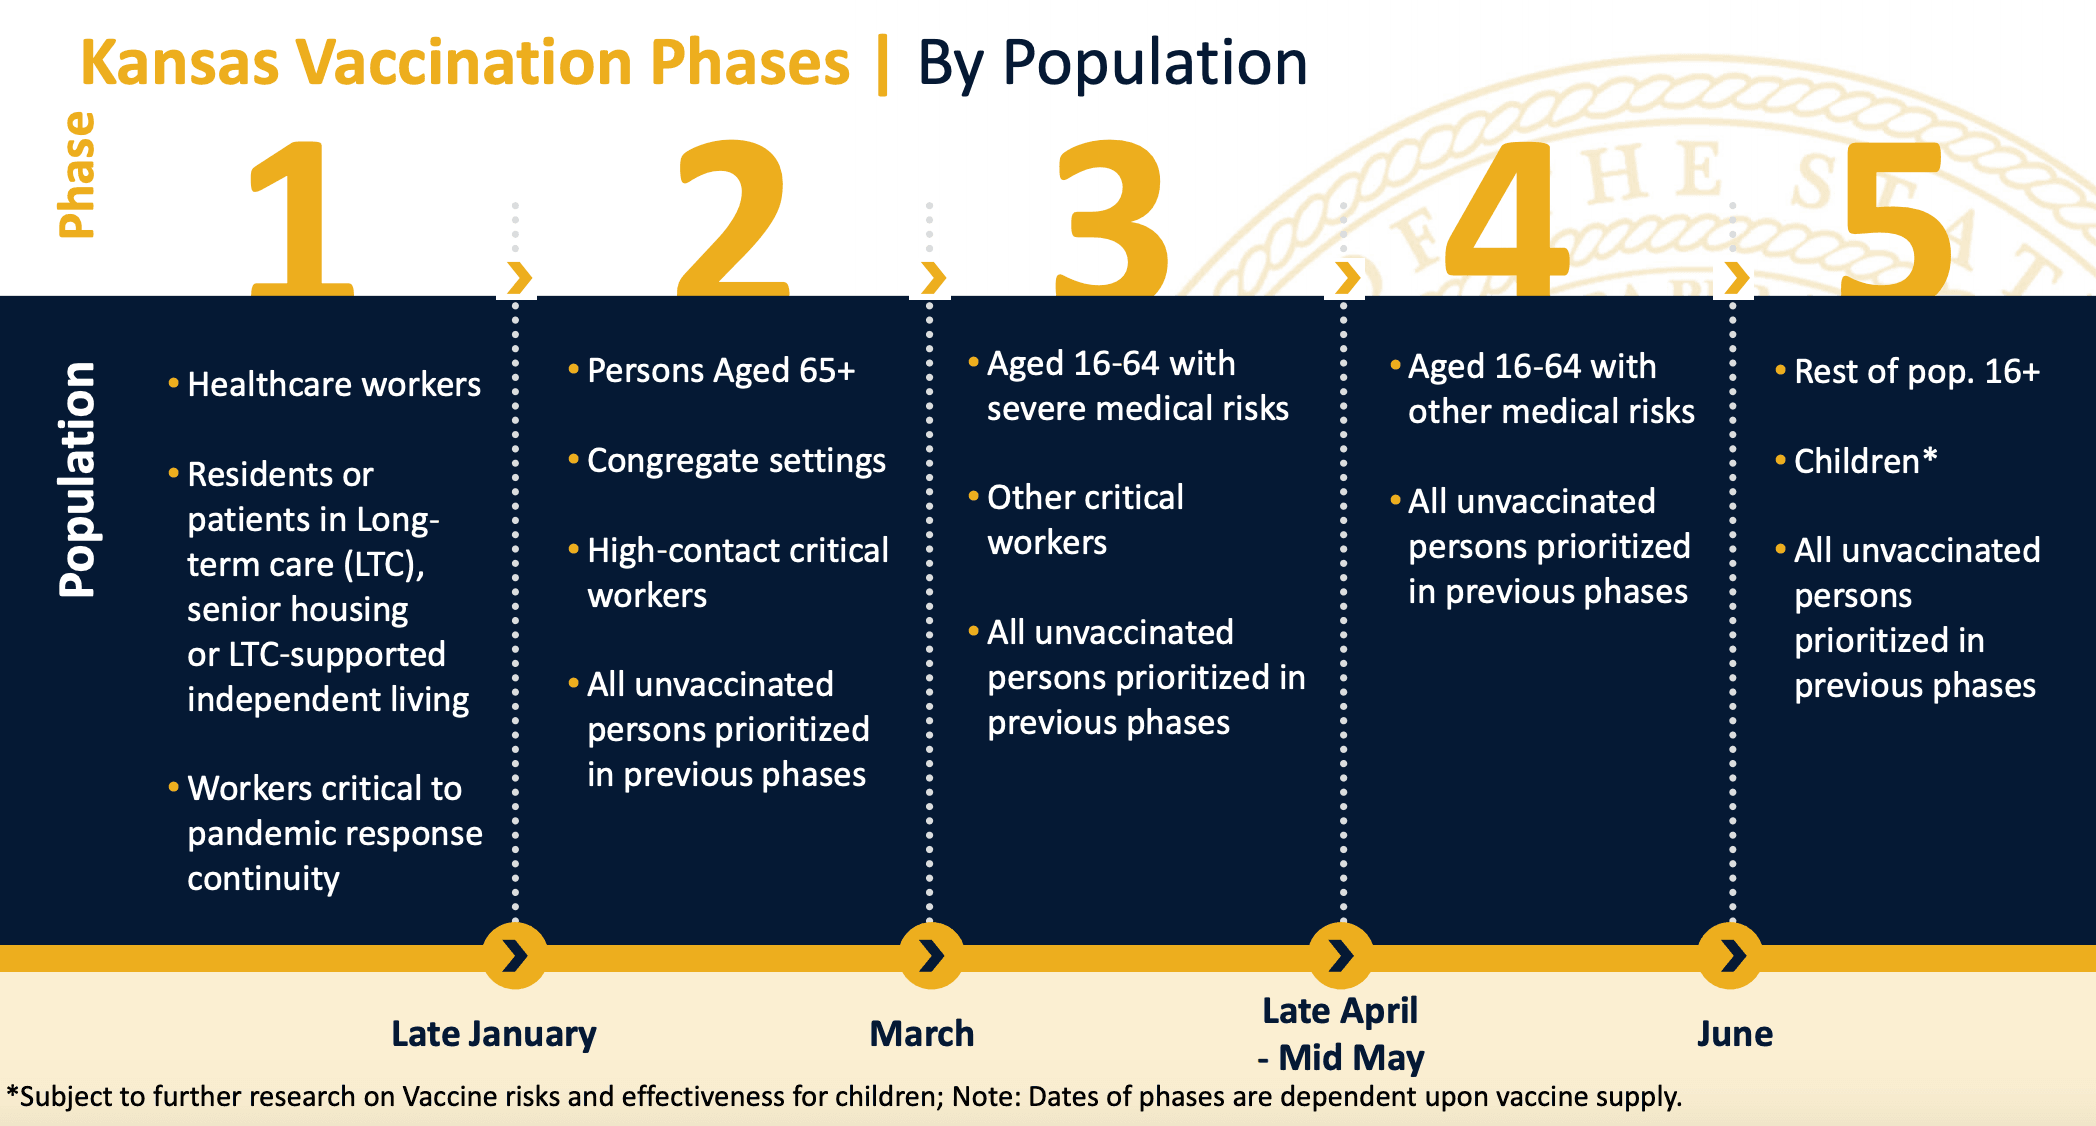 KDHE_vaccine phases 1.12